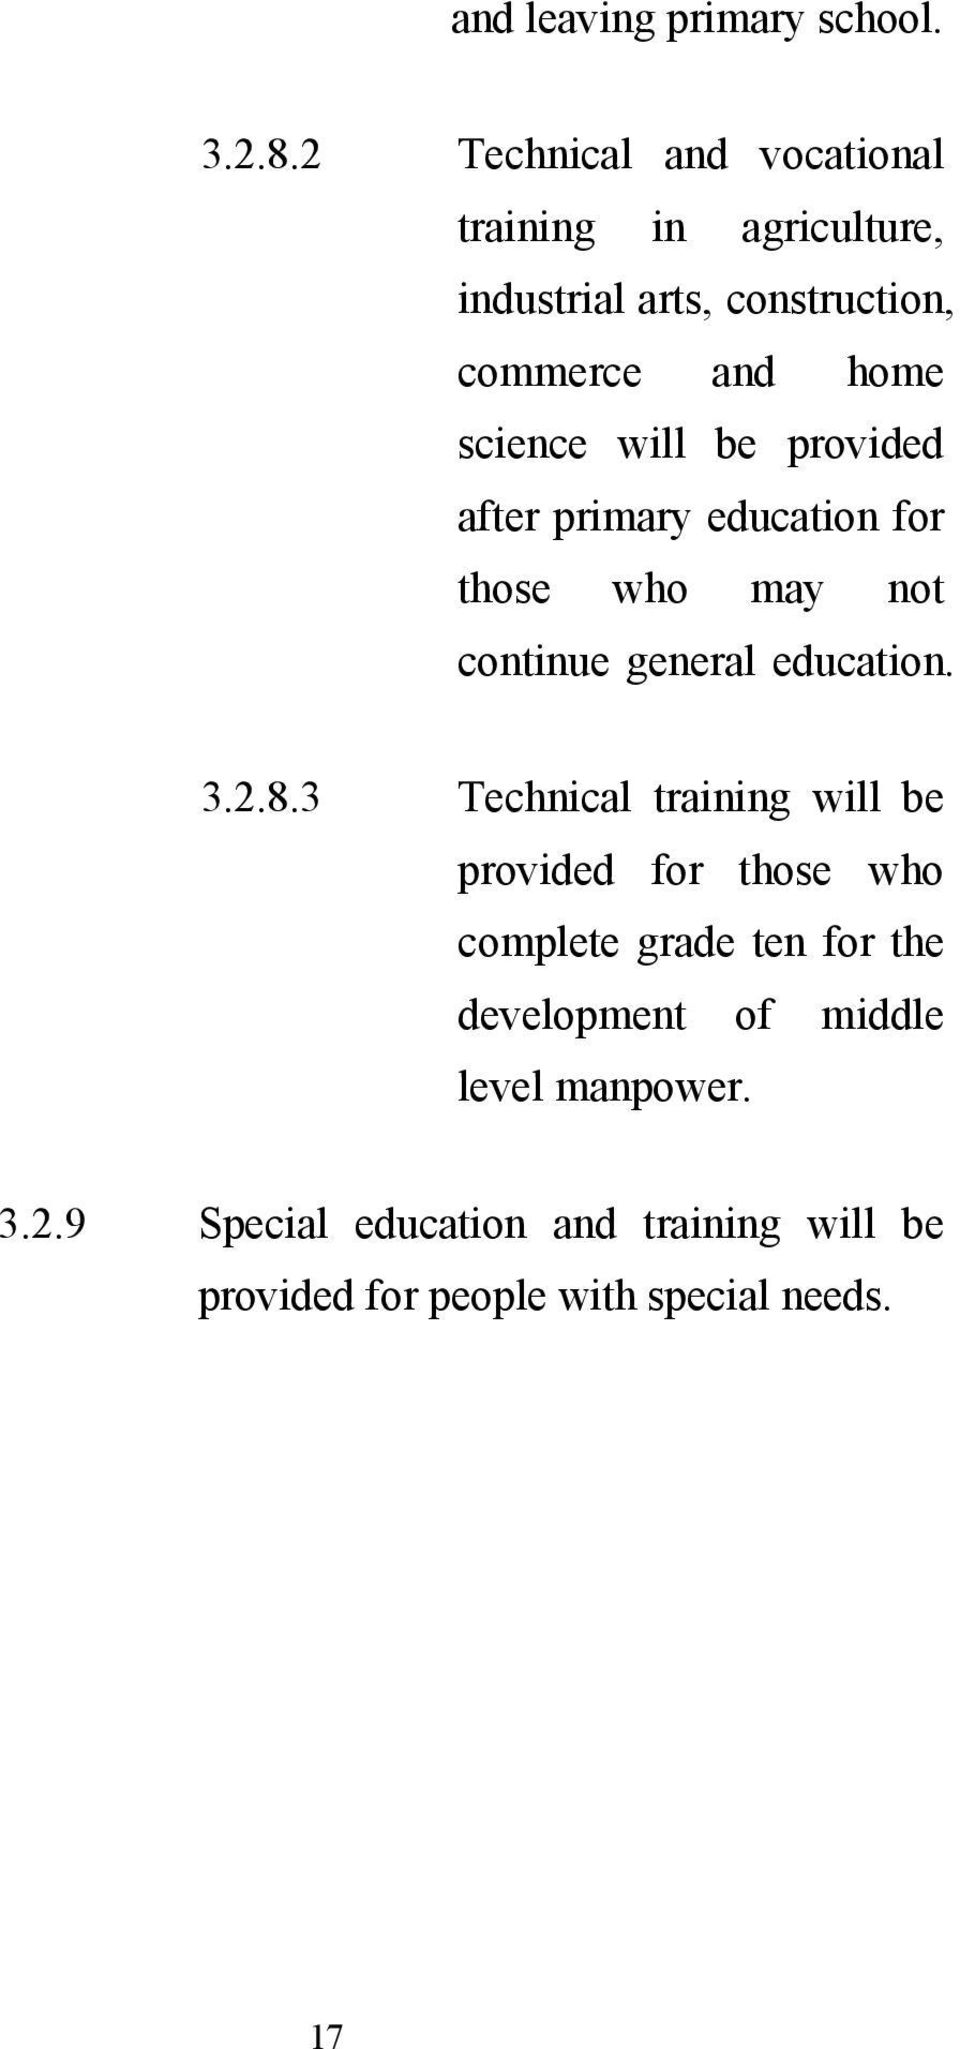 will be provided after primary education for those who may not continue general education. 3.2.8.